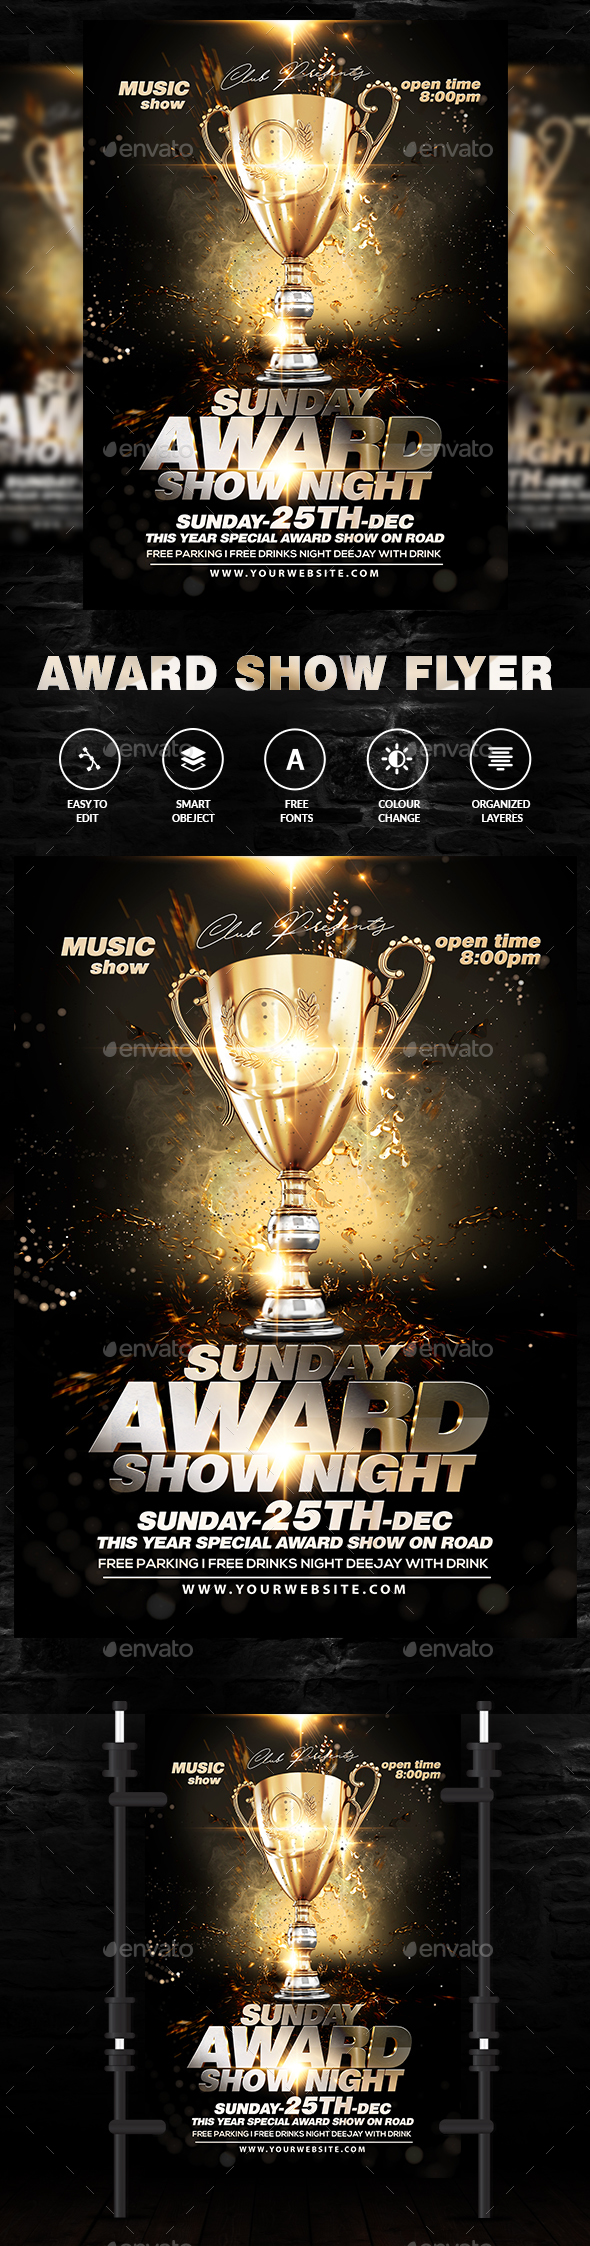 Award Show Flyer - Events Flyers